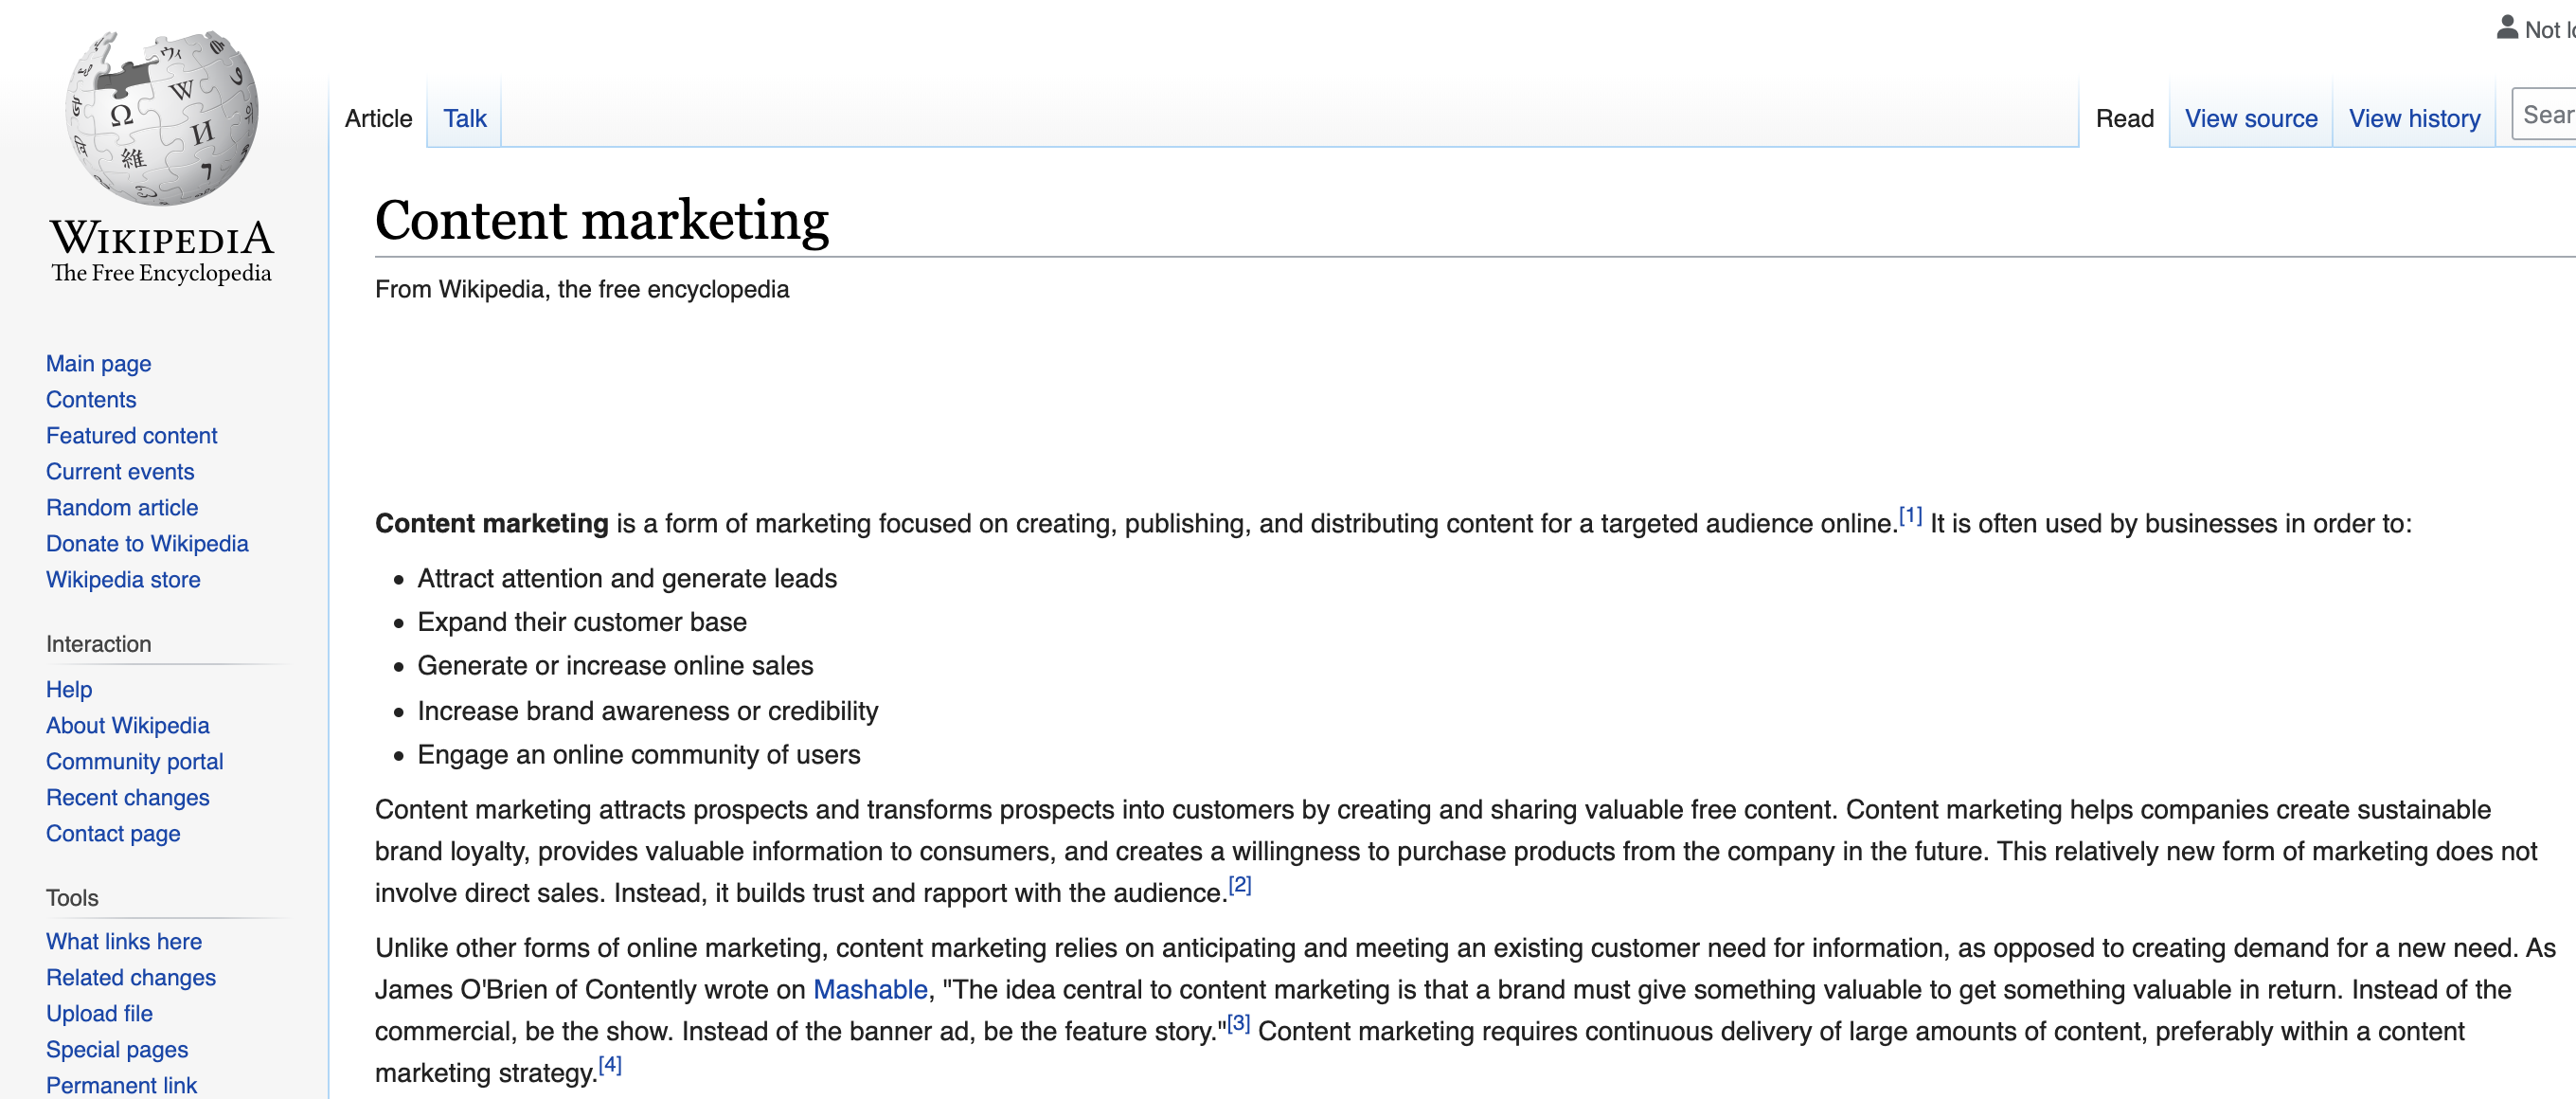 content marketing definition wikipedia